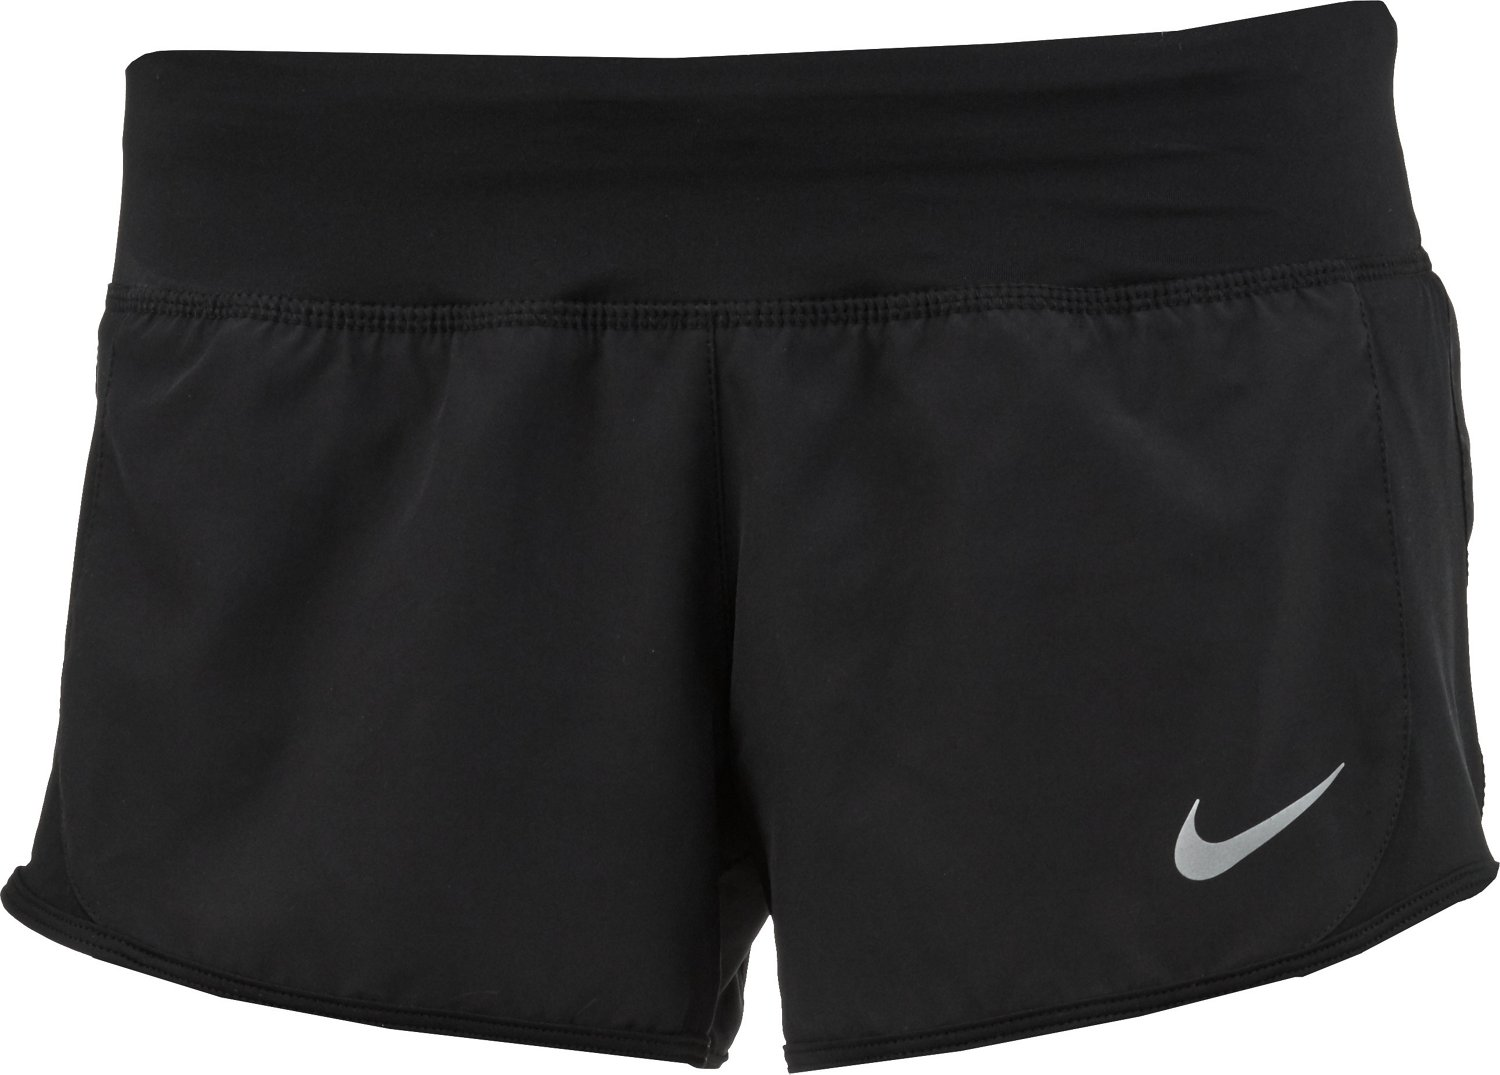 81ad00f1a985 Display product reviews for Nike Women s Crew Short